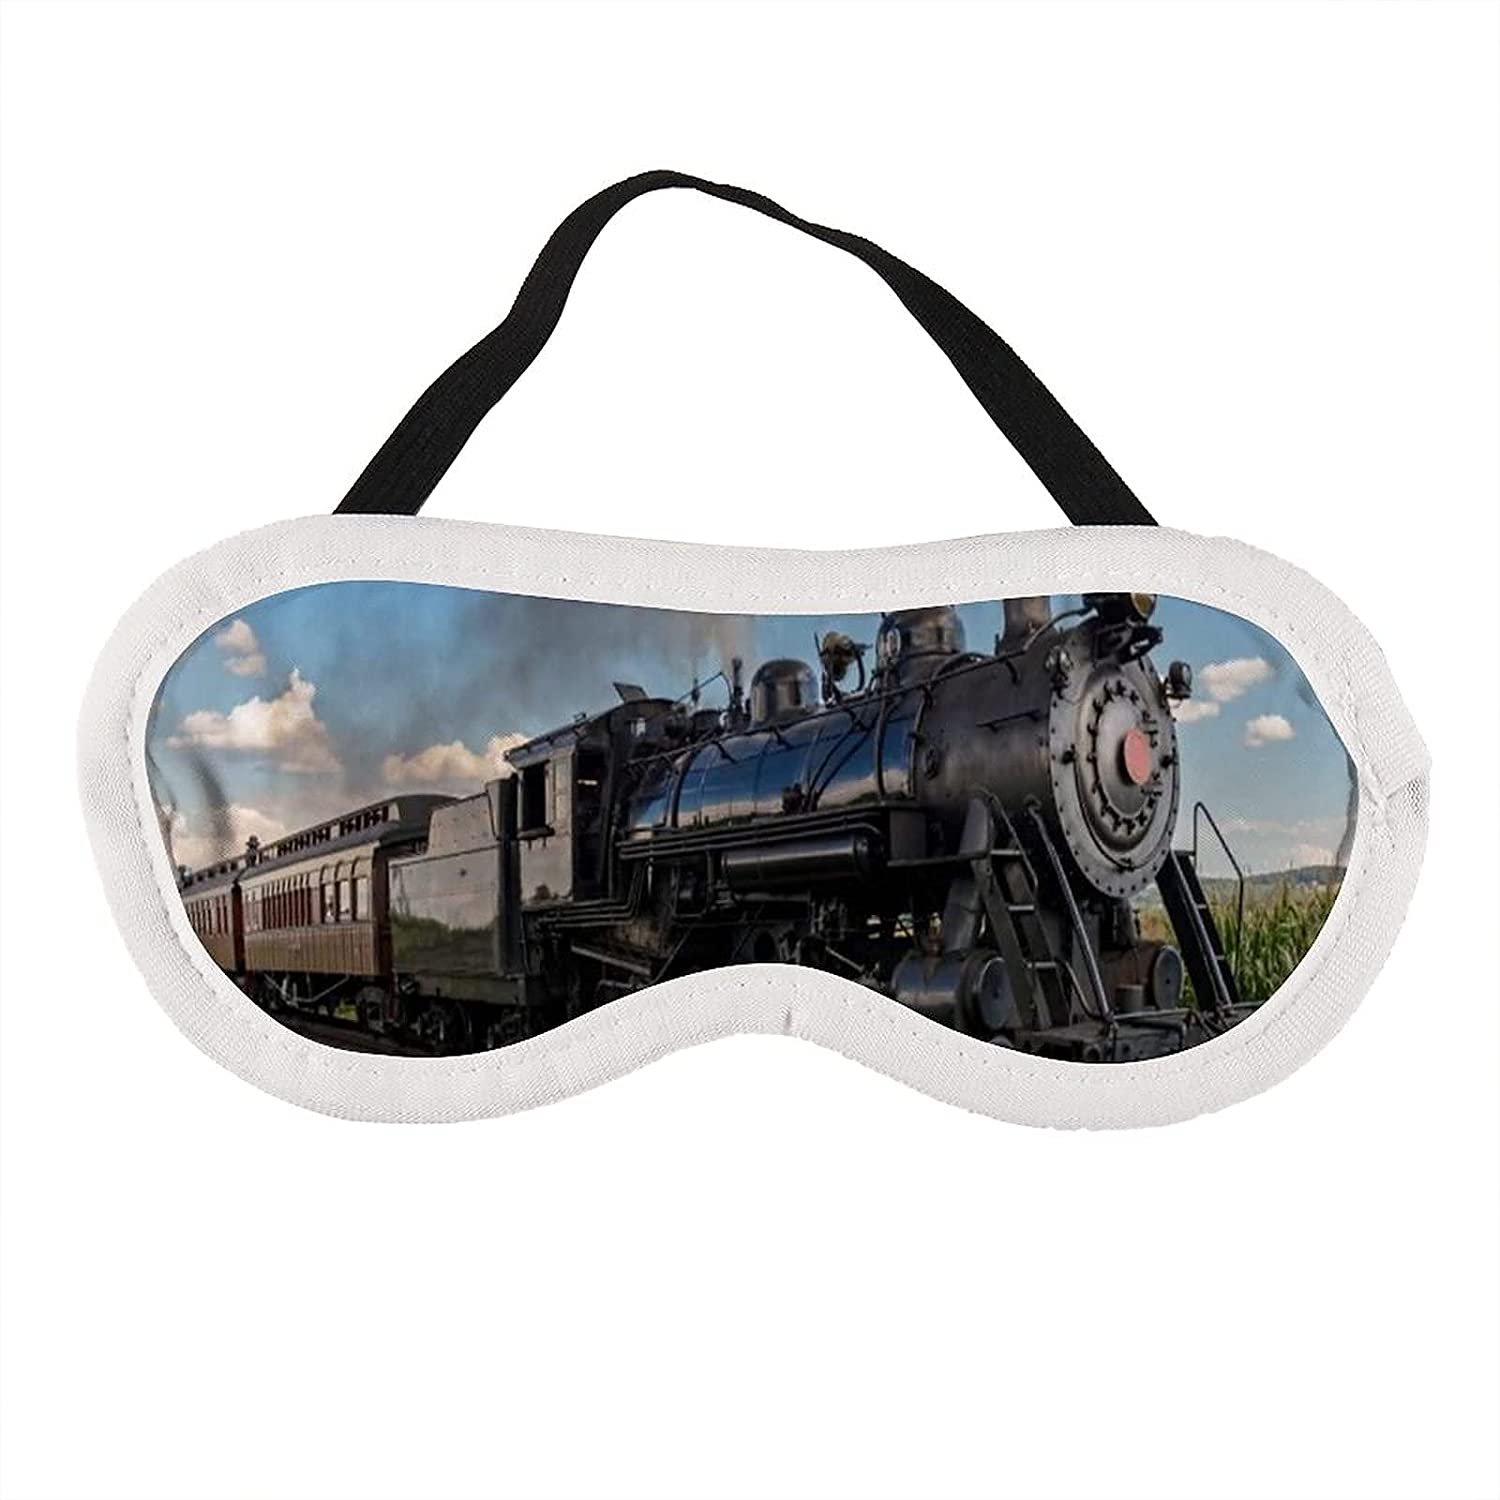 Vintage Locomotive in Countryside Scenery Train Grass Dealing full price gift reduction Green Puff